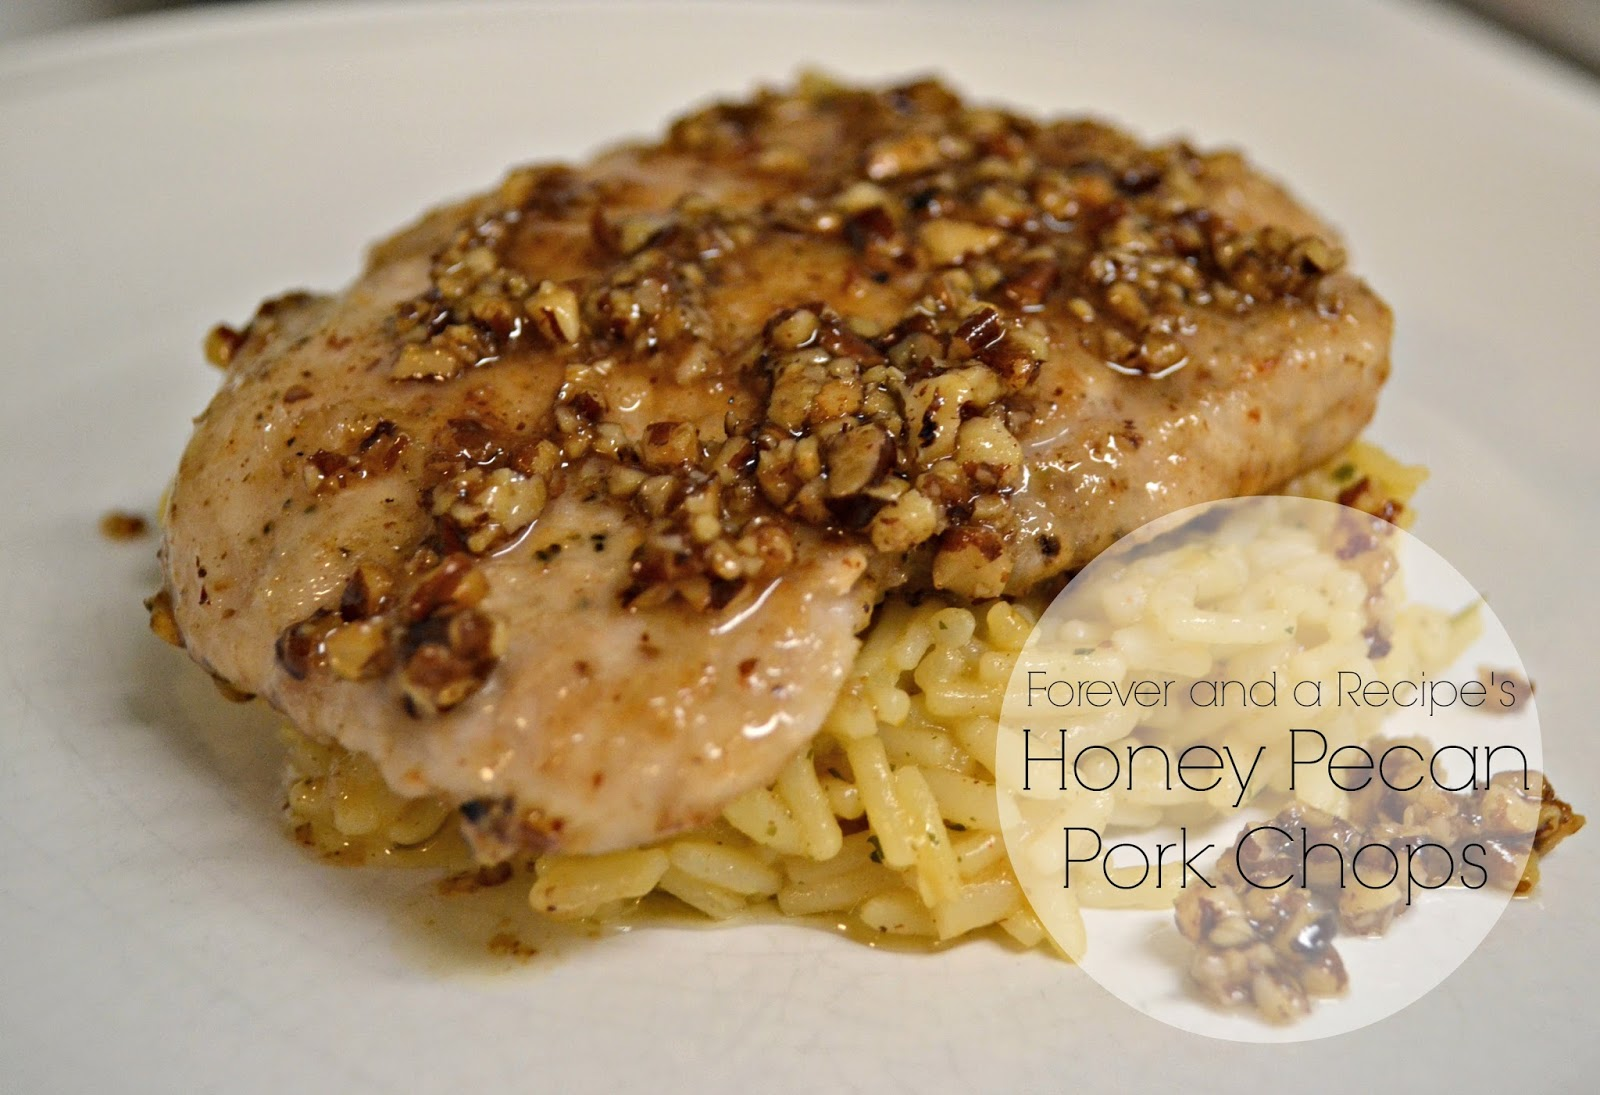 Honey pecan pork chop | Cooking | Pinterest